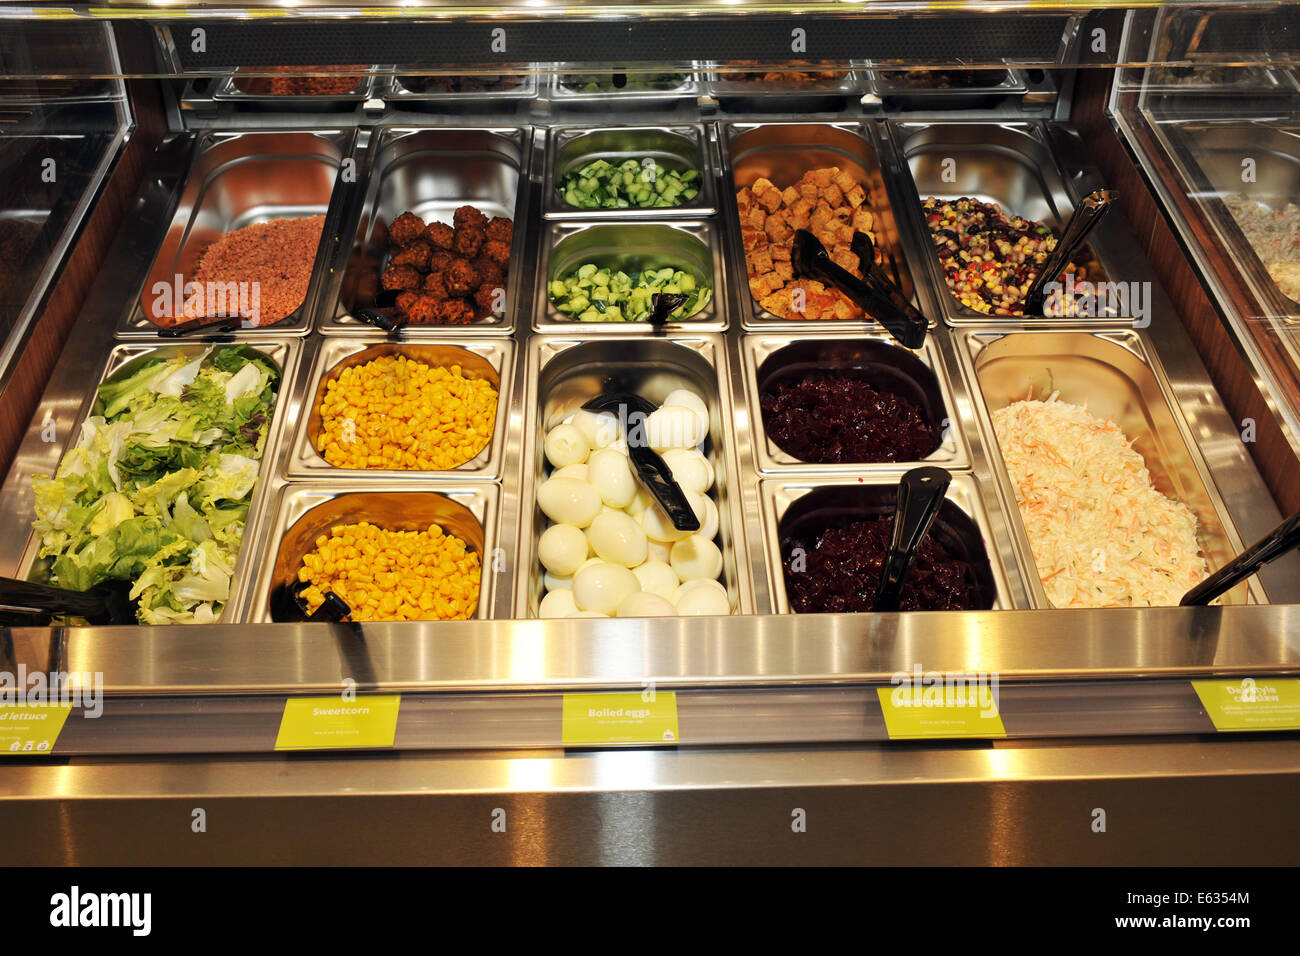 Salad buffet in a supermarket UK - Stock Image